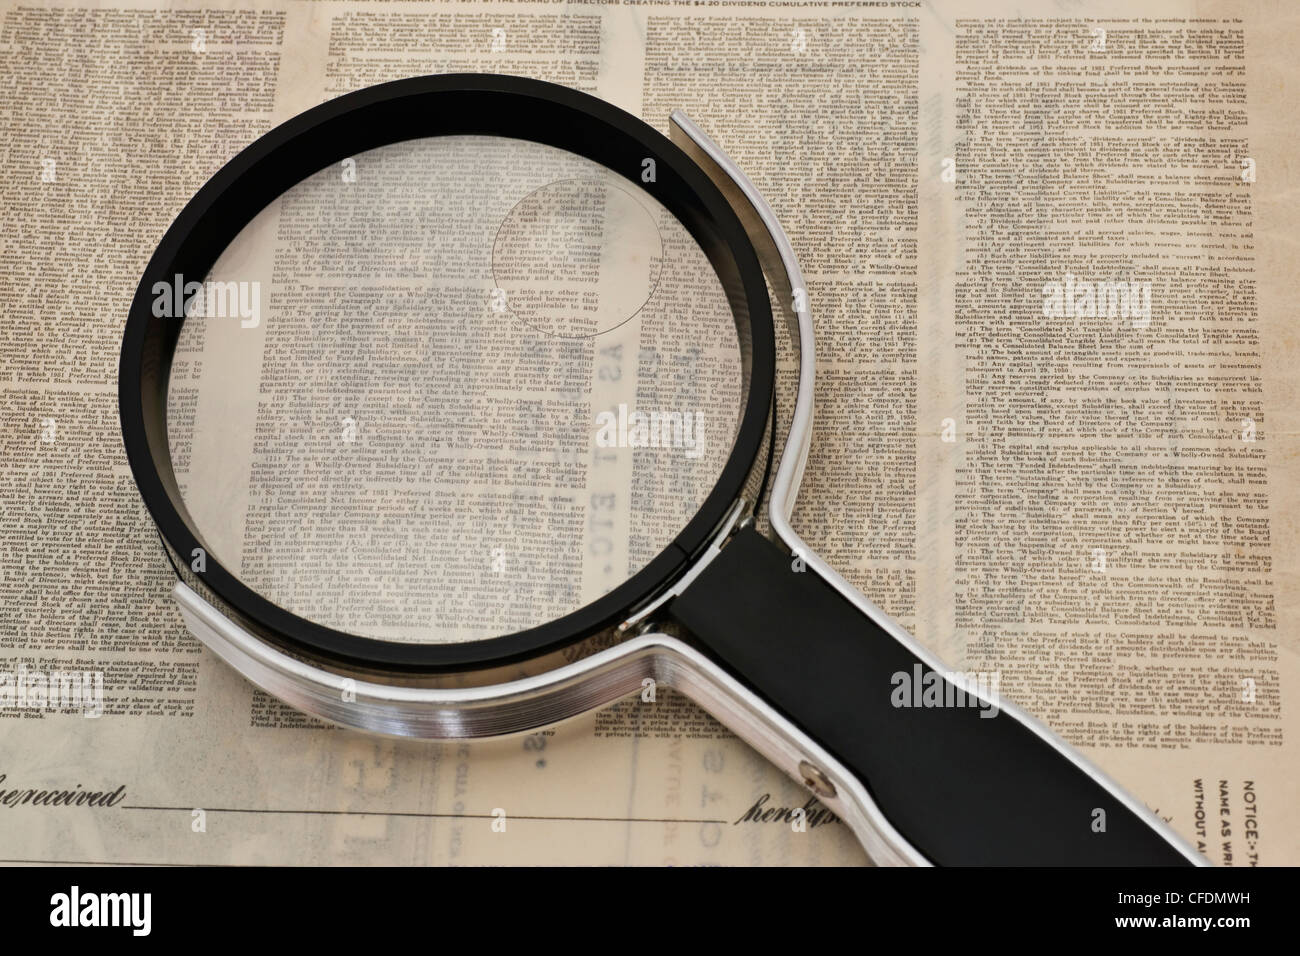 a magnifying glass is on a very small print terms and conditions - Stock Image